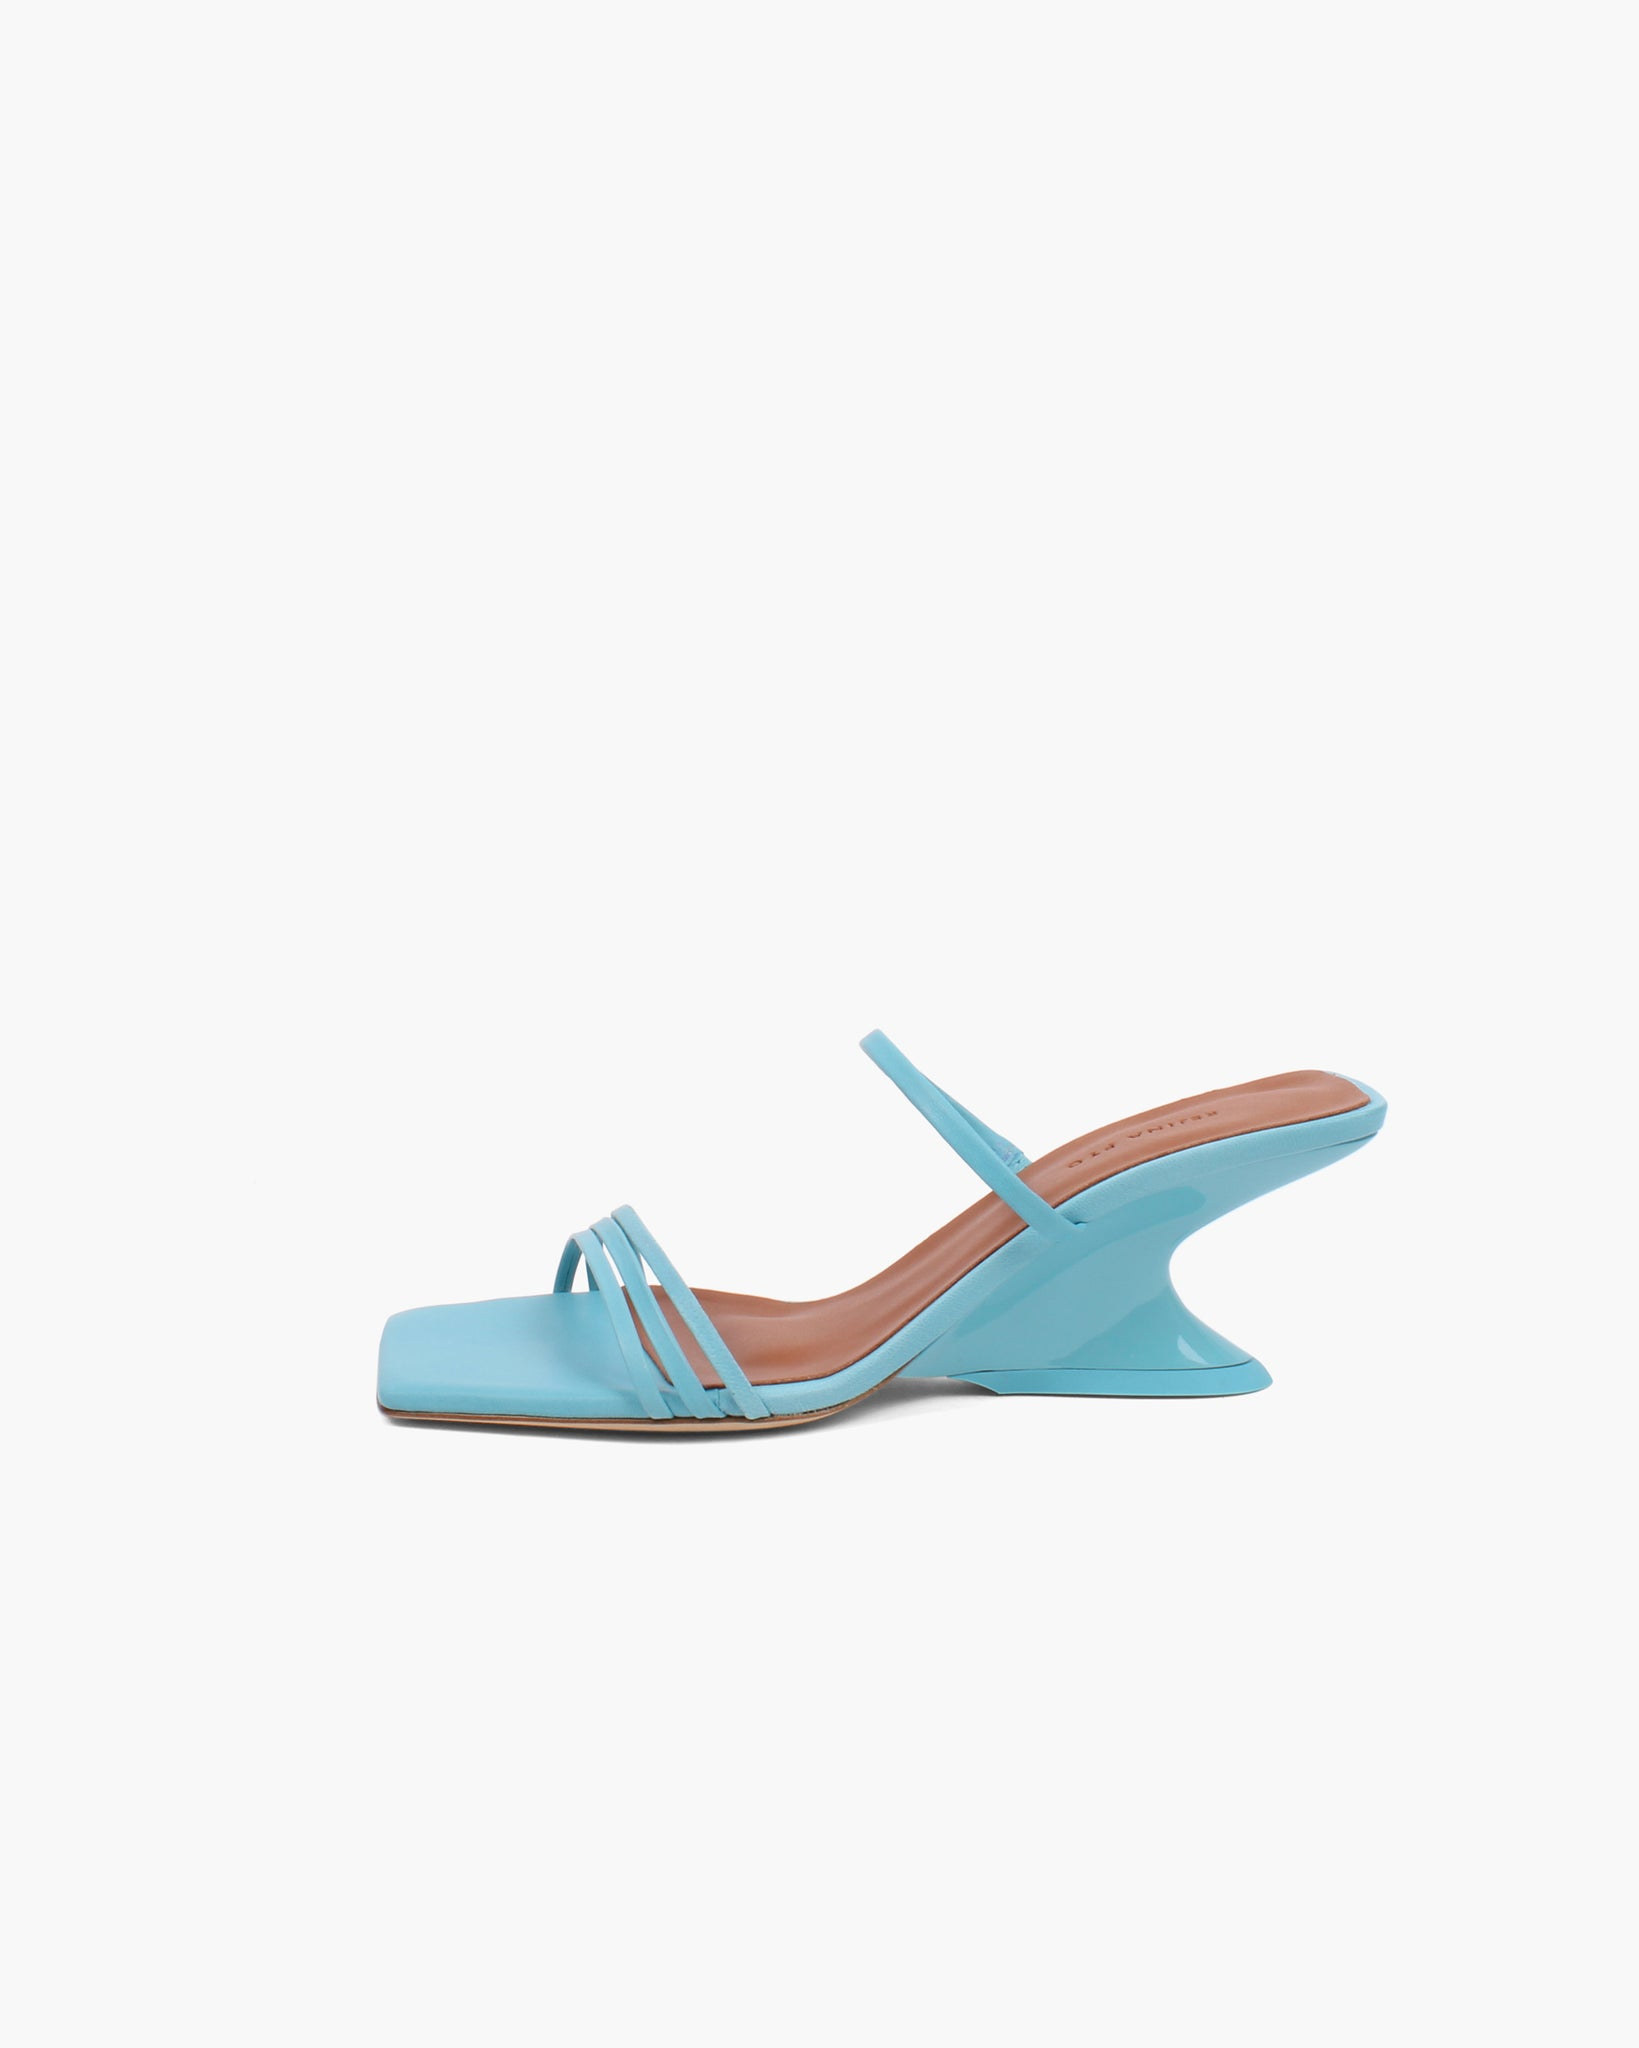 Romy Sandals Leather Jewel Blue